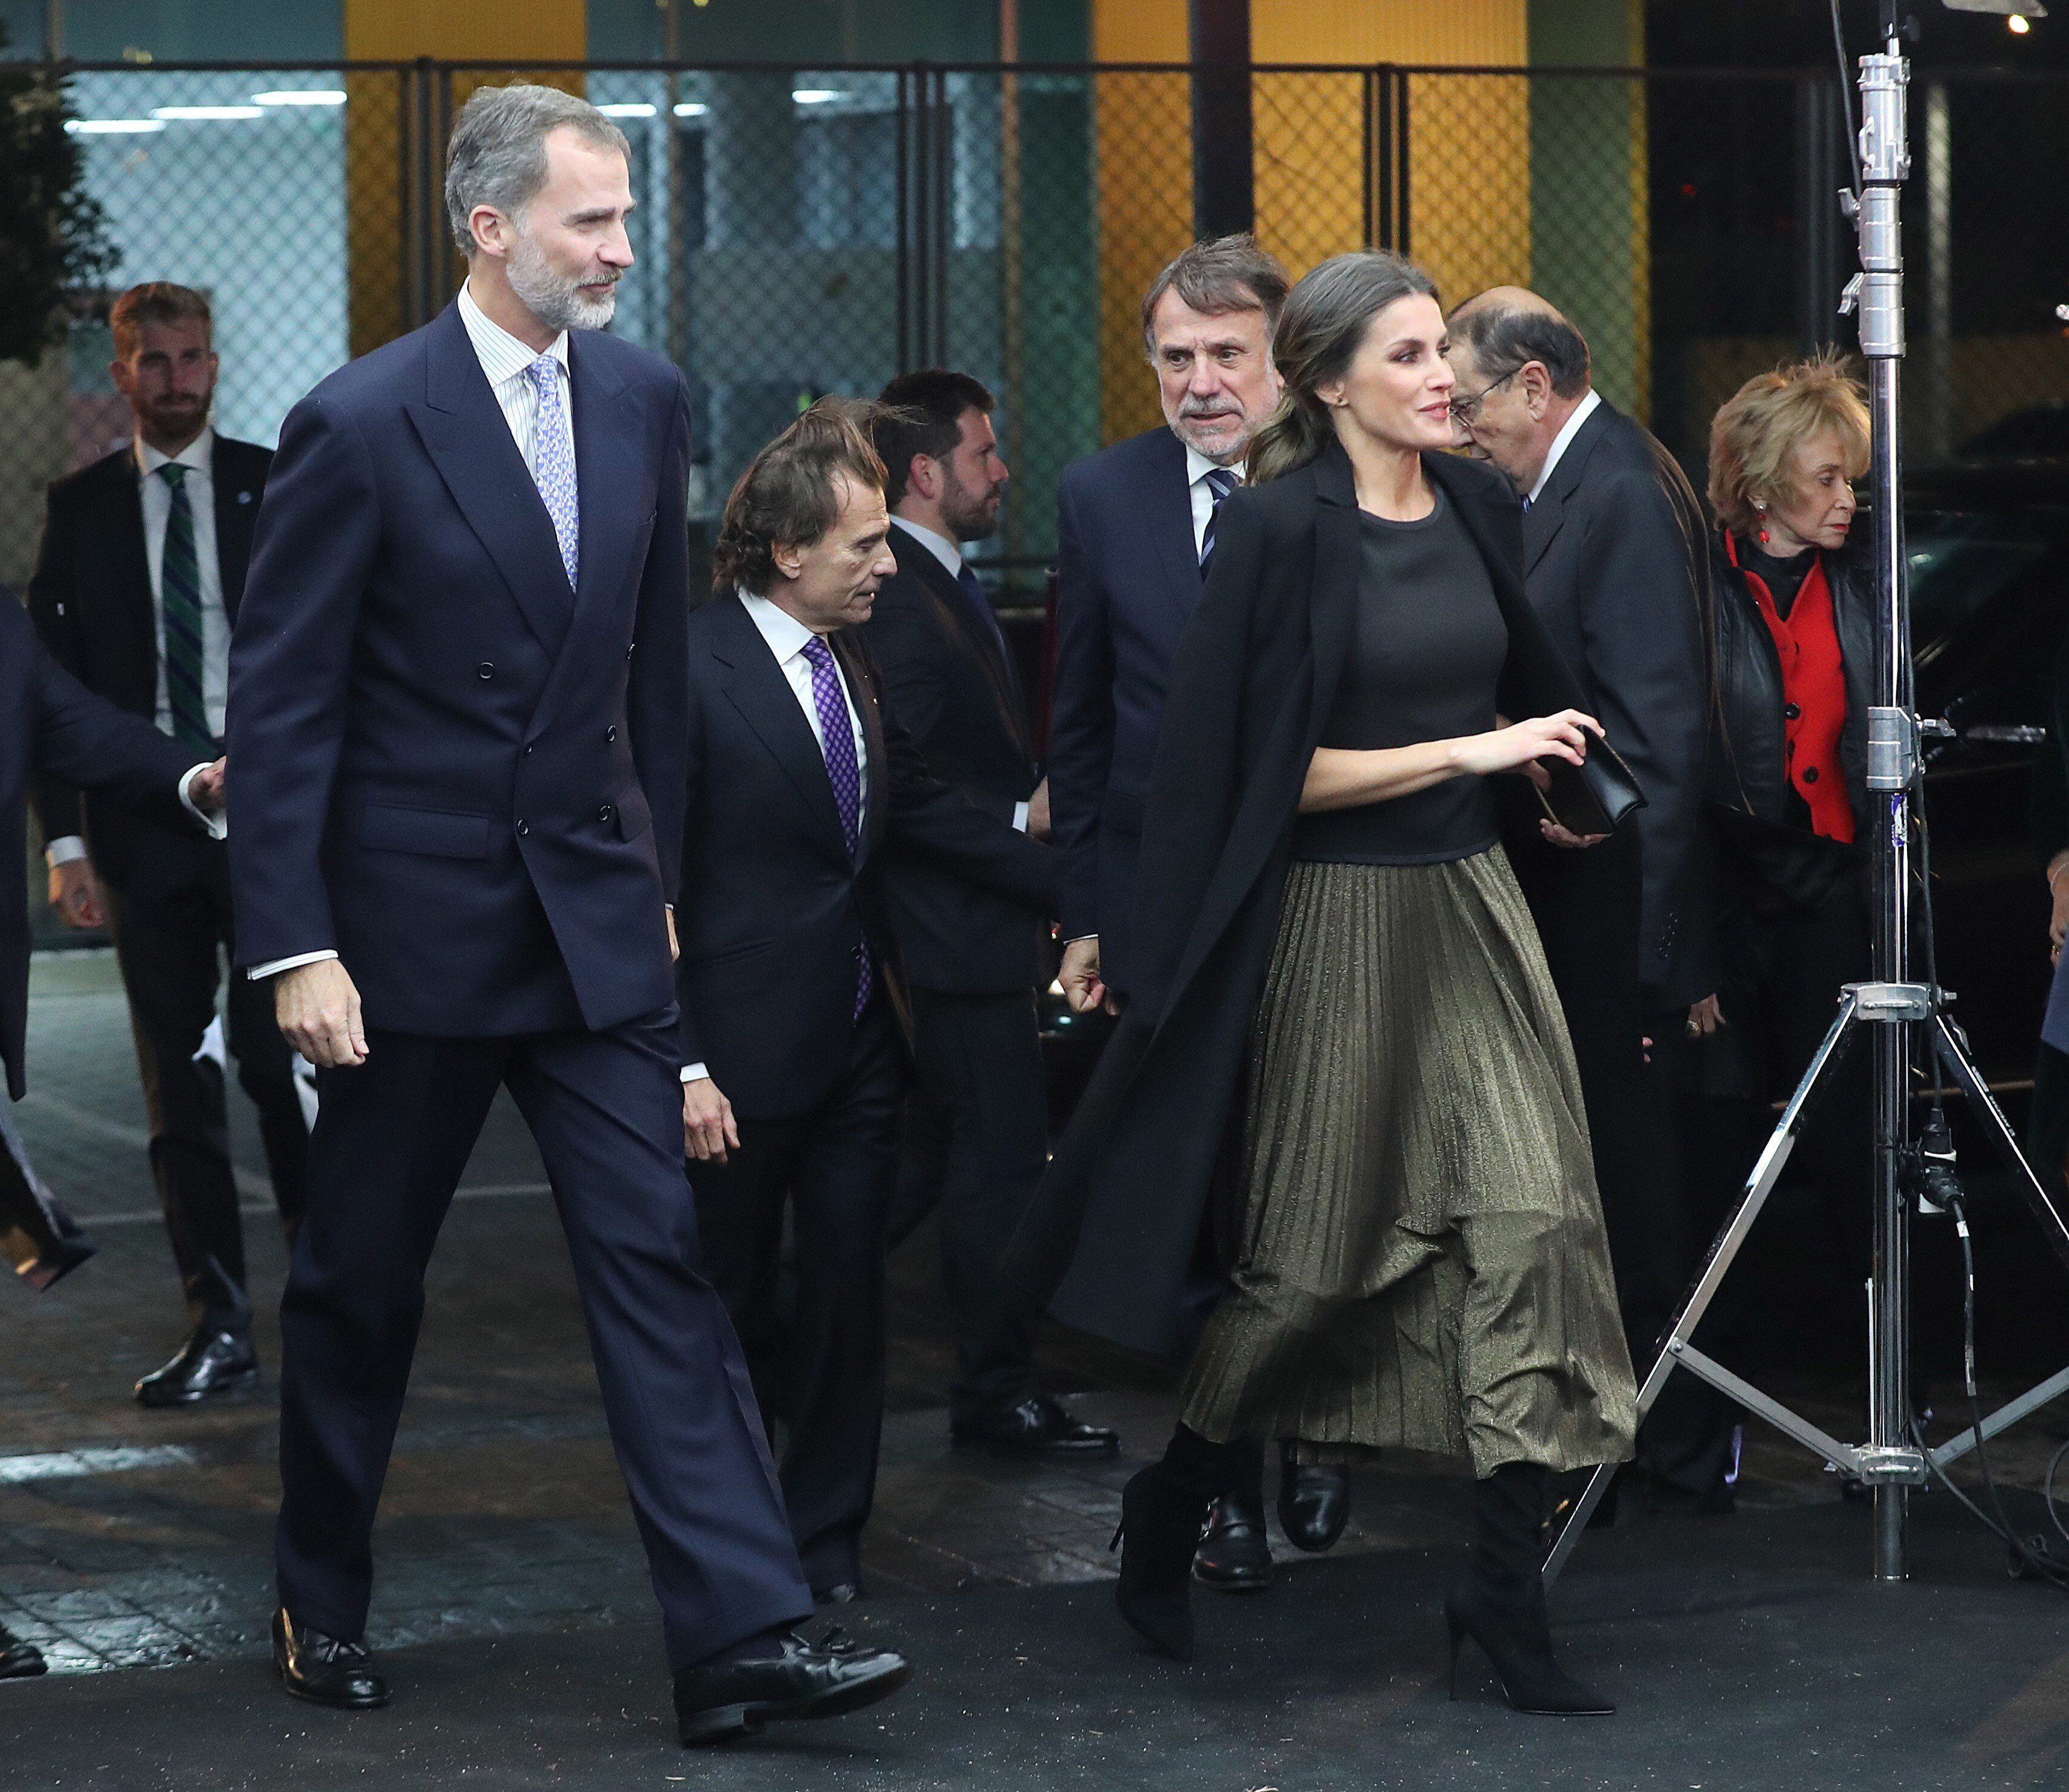 Queen Letizia Just Wore The Best Holiday Party Skirt - Fame10